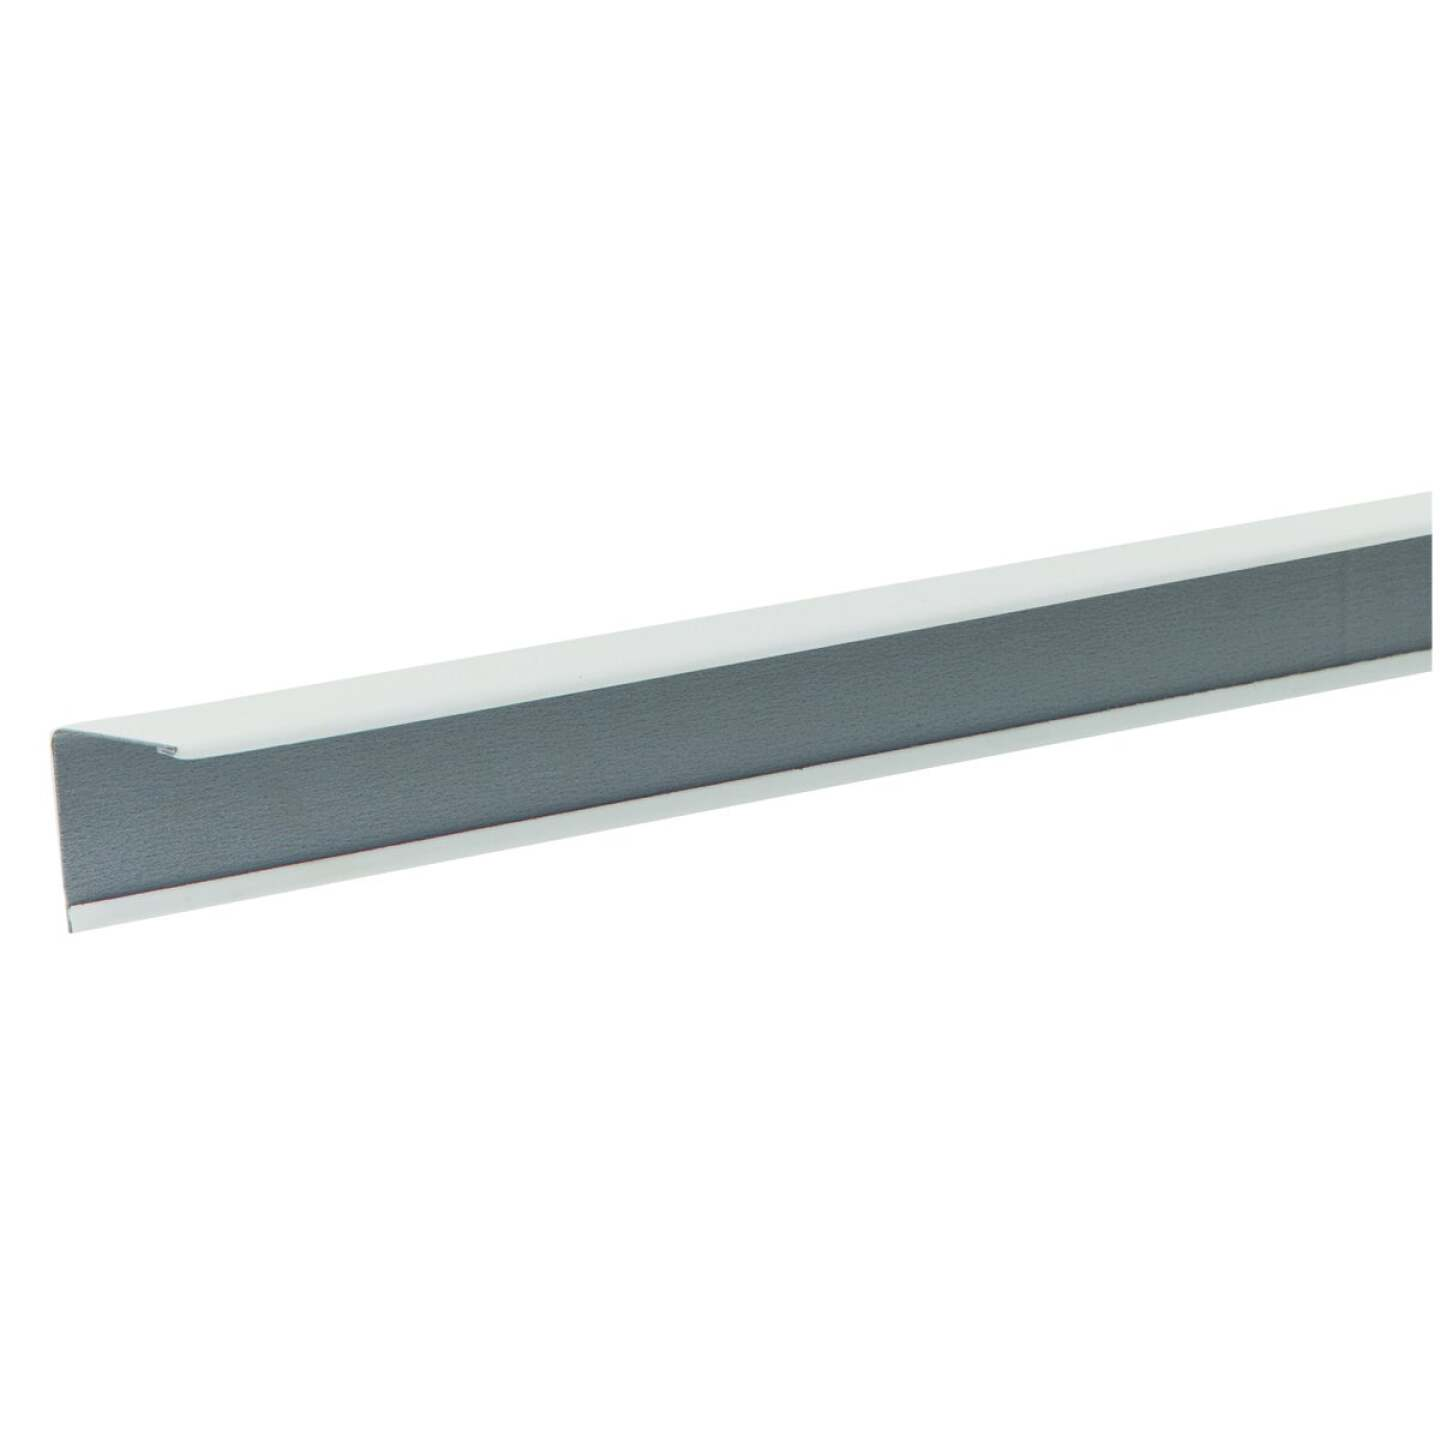 Donn 12 Ft. x 7/8 in. White Steel Ceiling Wall Molding Image 1